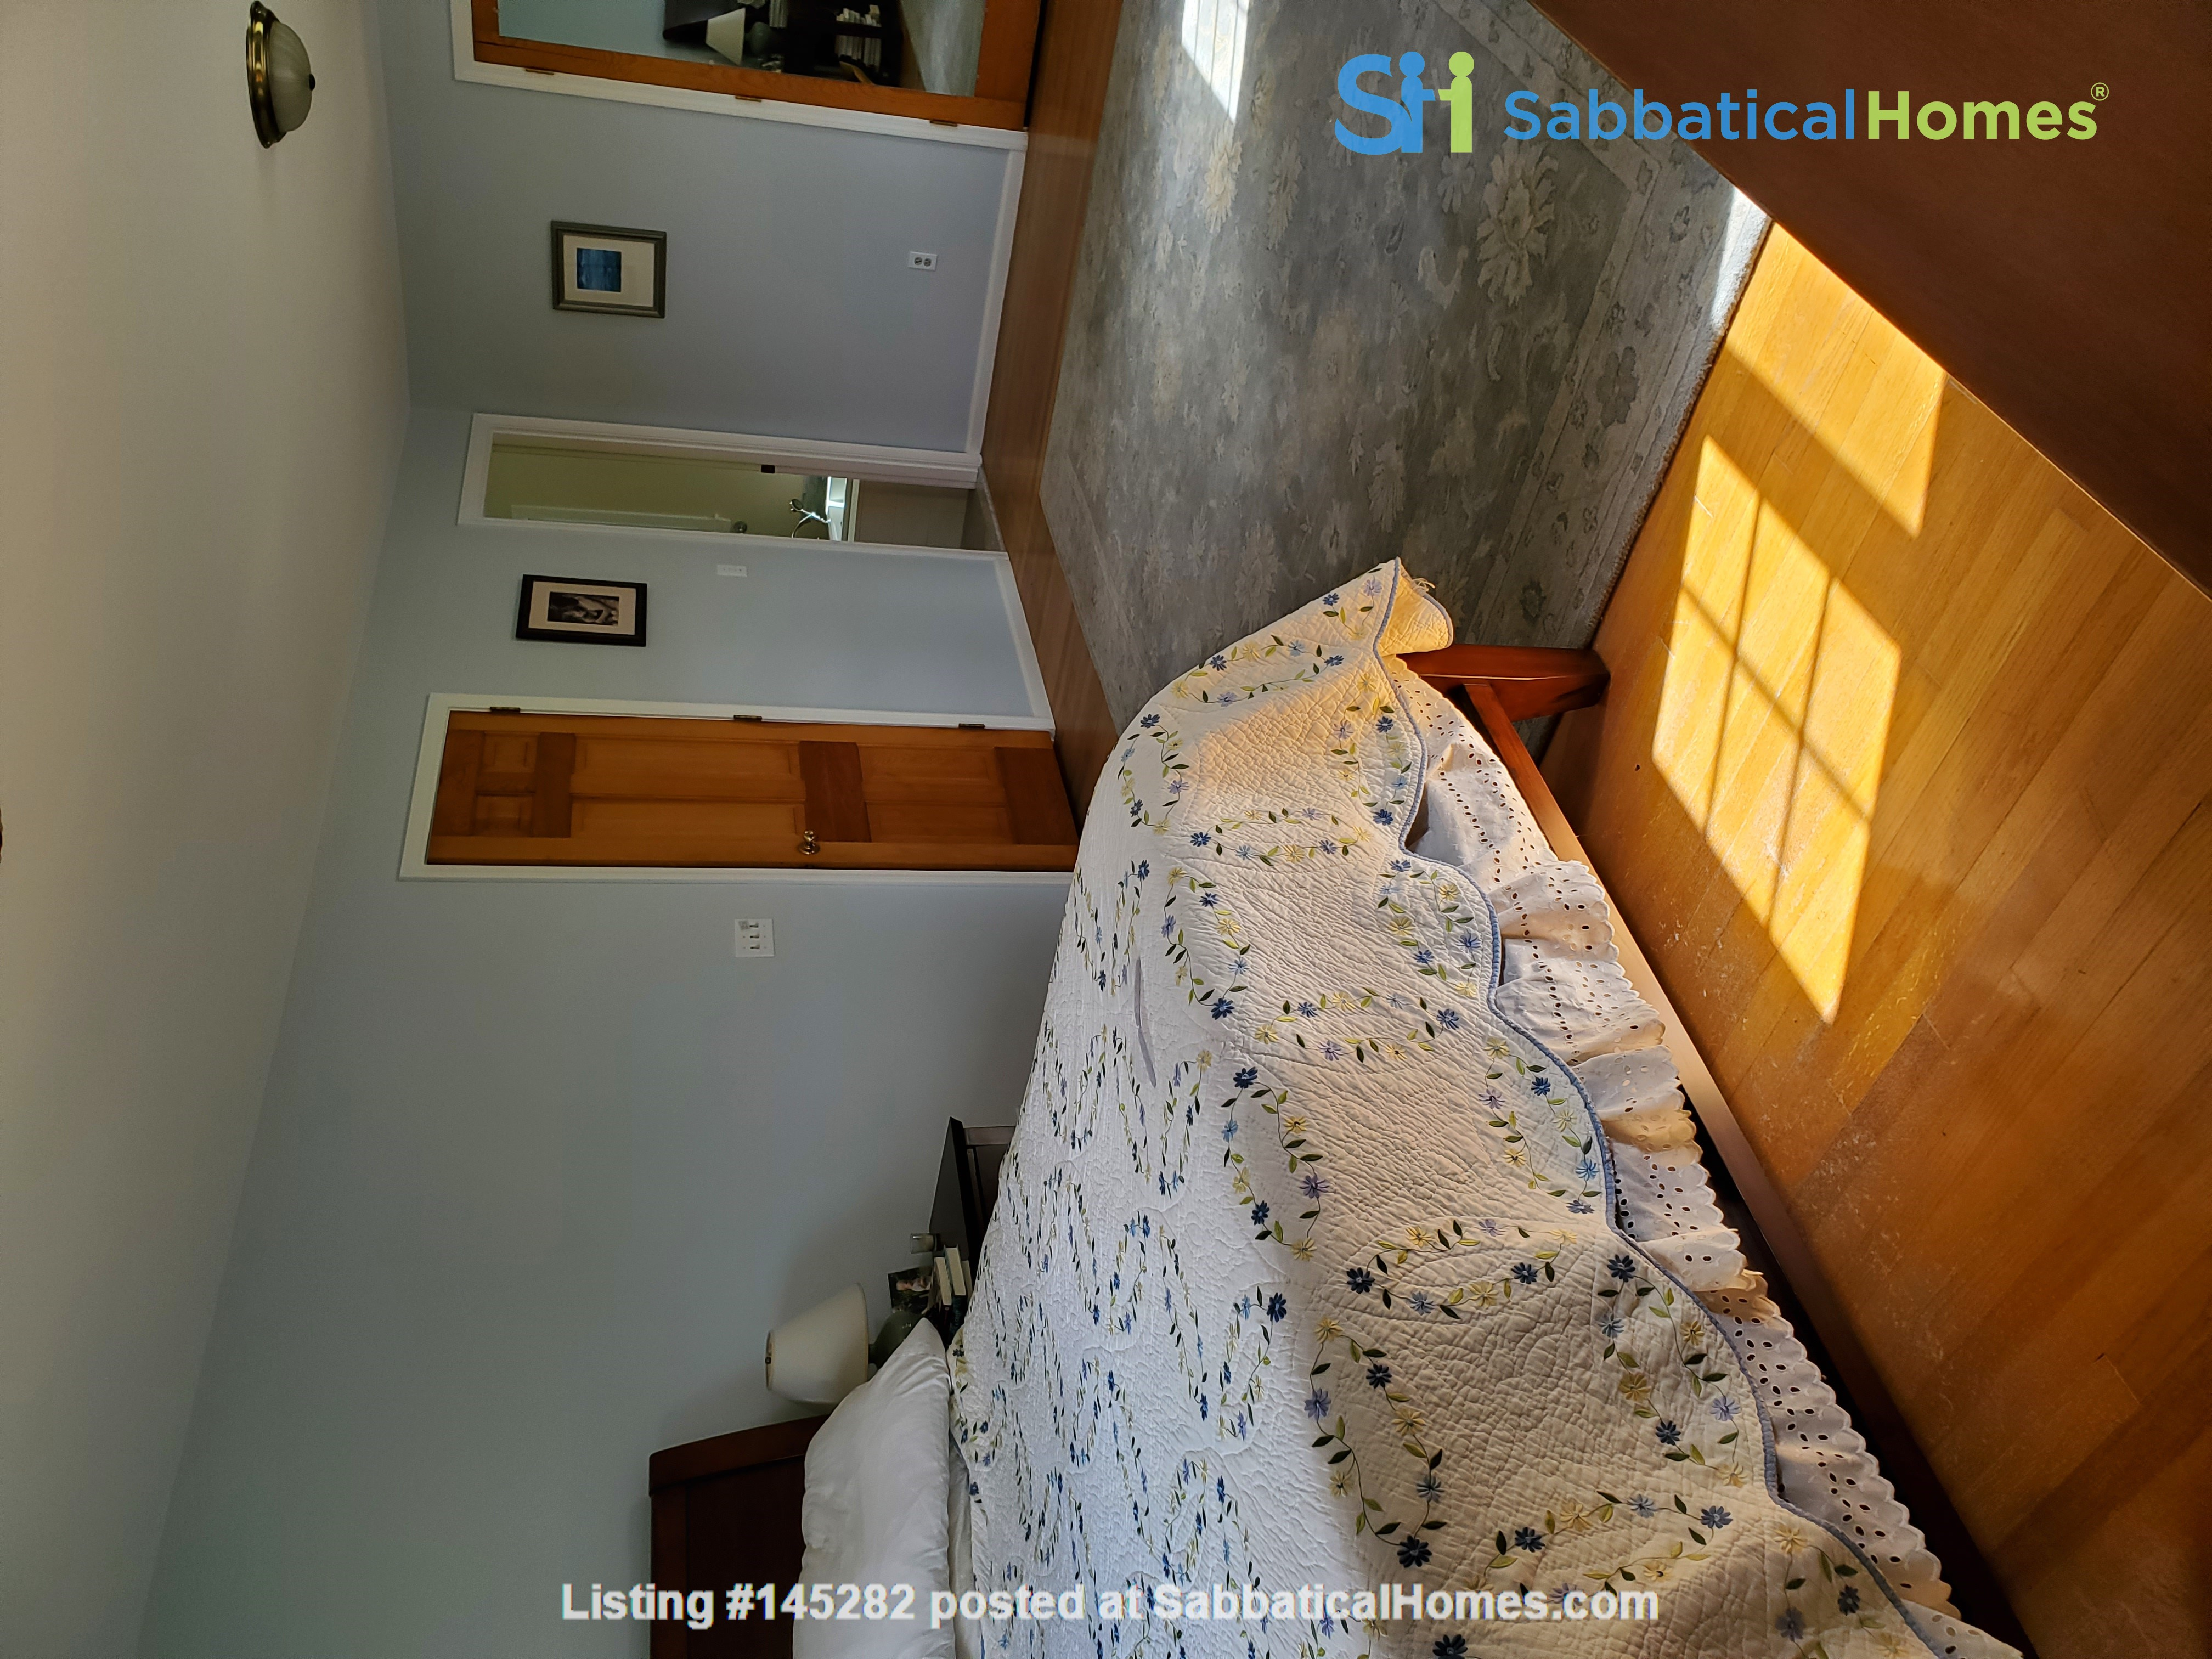 Spacious, Peaceful Getaway in Beautiful Amherst, MA, 4 BR 3.5 ba Home Rental in Amherst, Massachusetts, United States 3